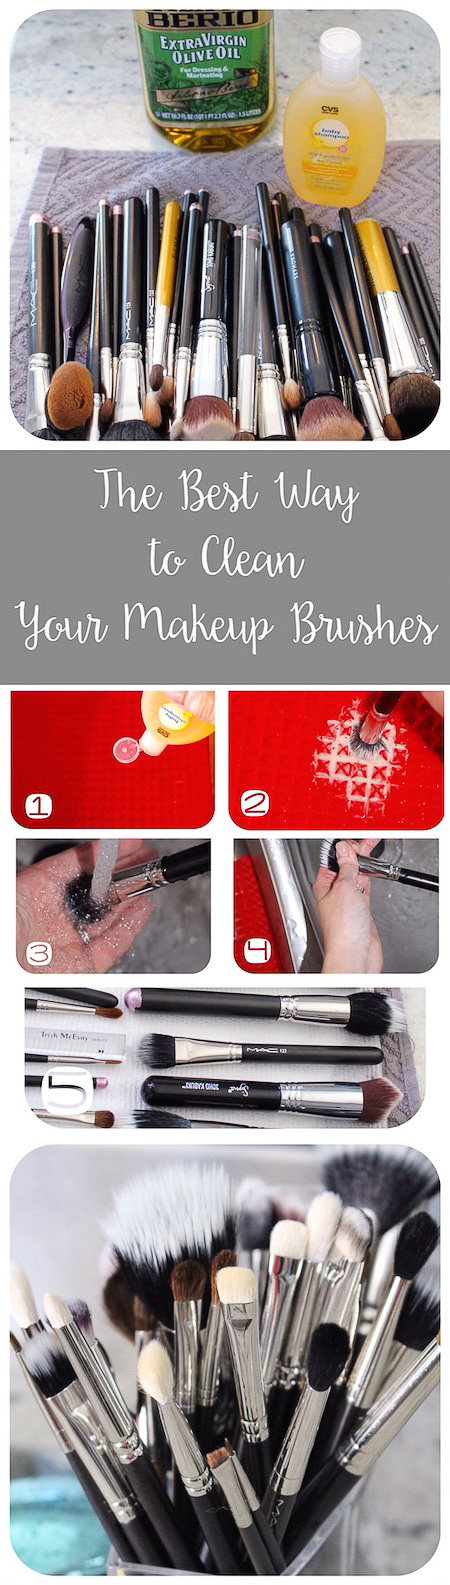 The best tutorial for cleaning makeup brushes! via @lydioutloud